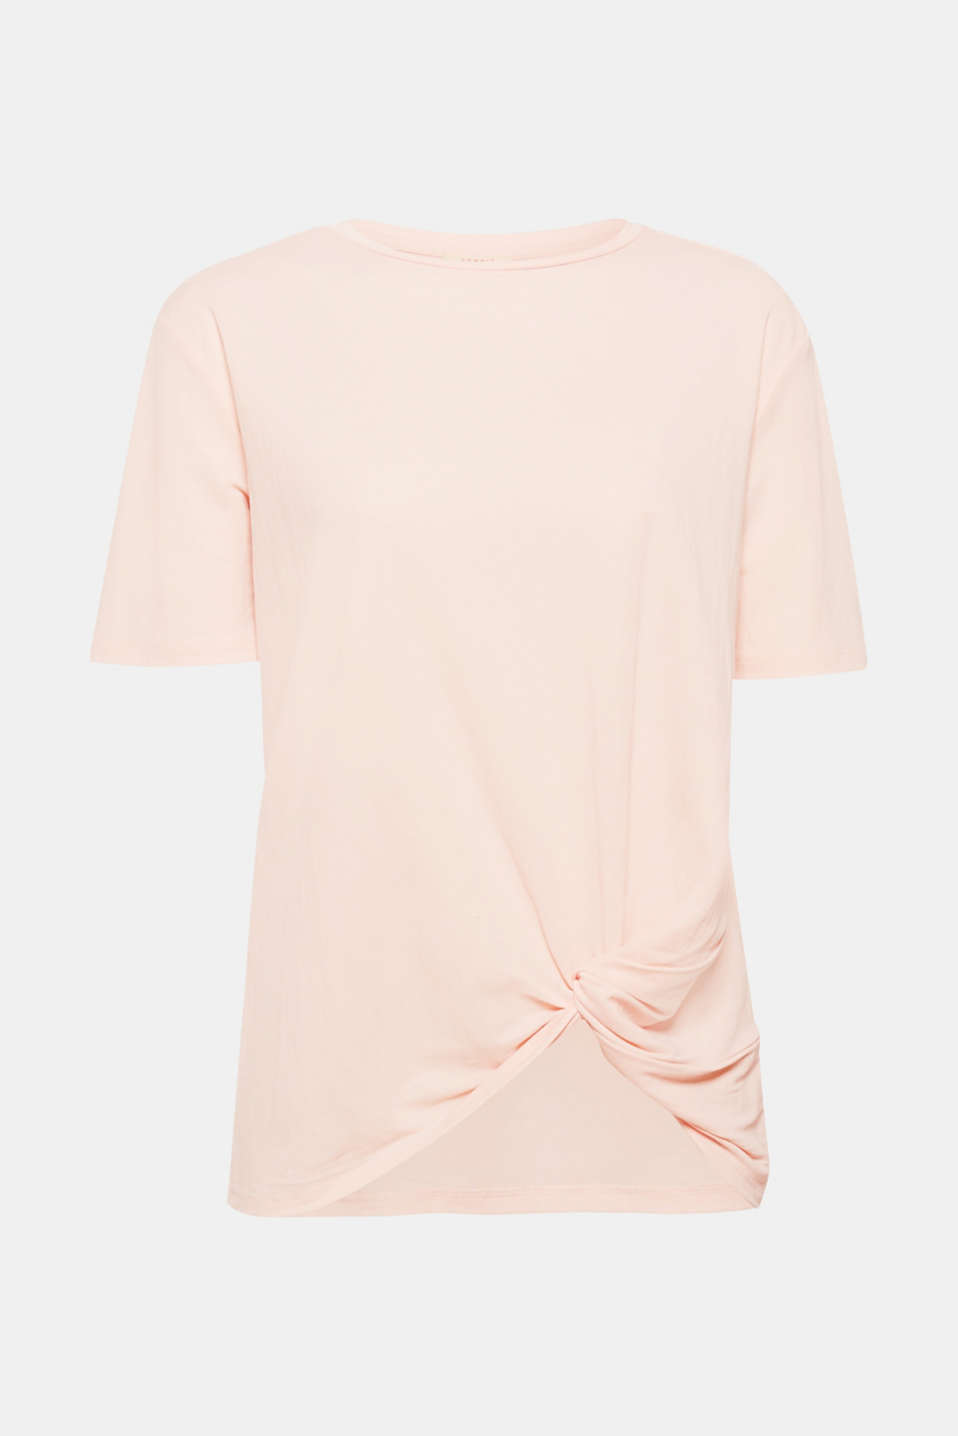 DESIGN EDITION: the loose cut featuring draping at the side of the hem makes this casual yet sophisticated T-shirt extremely eye-catching!